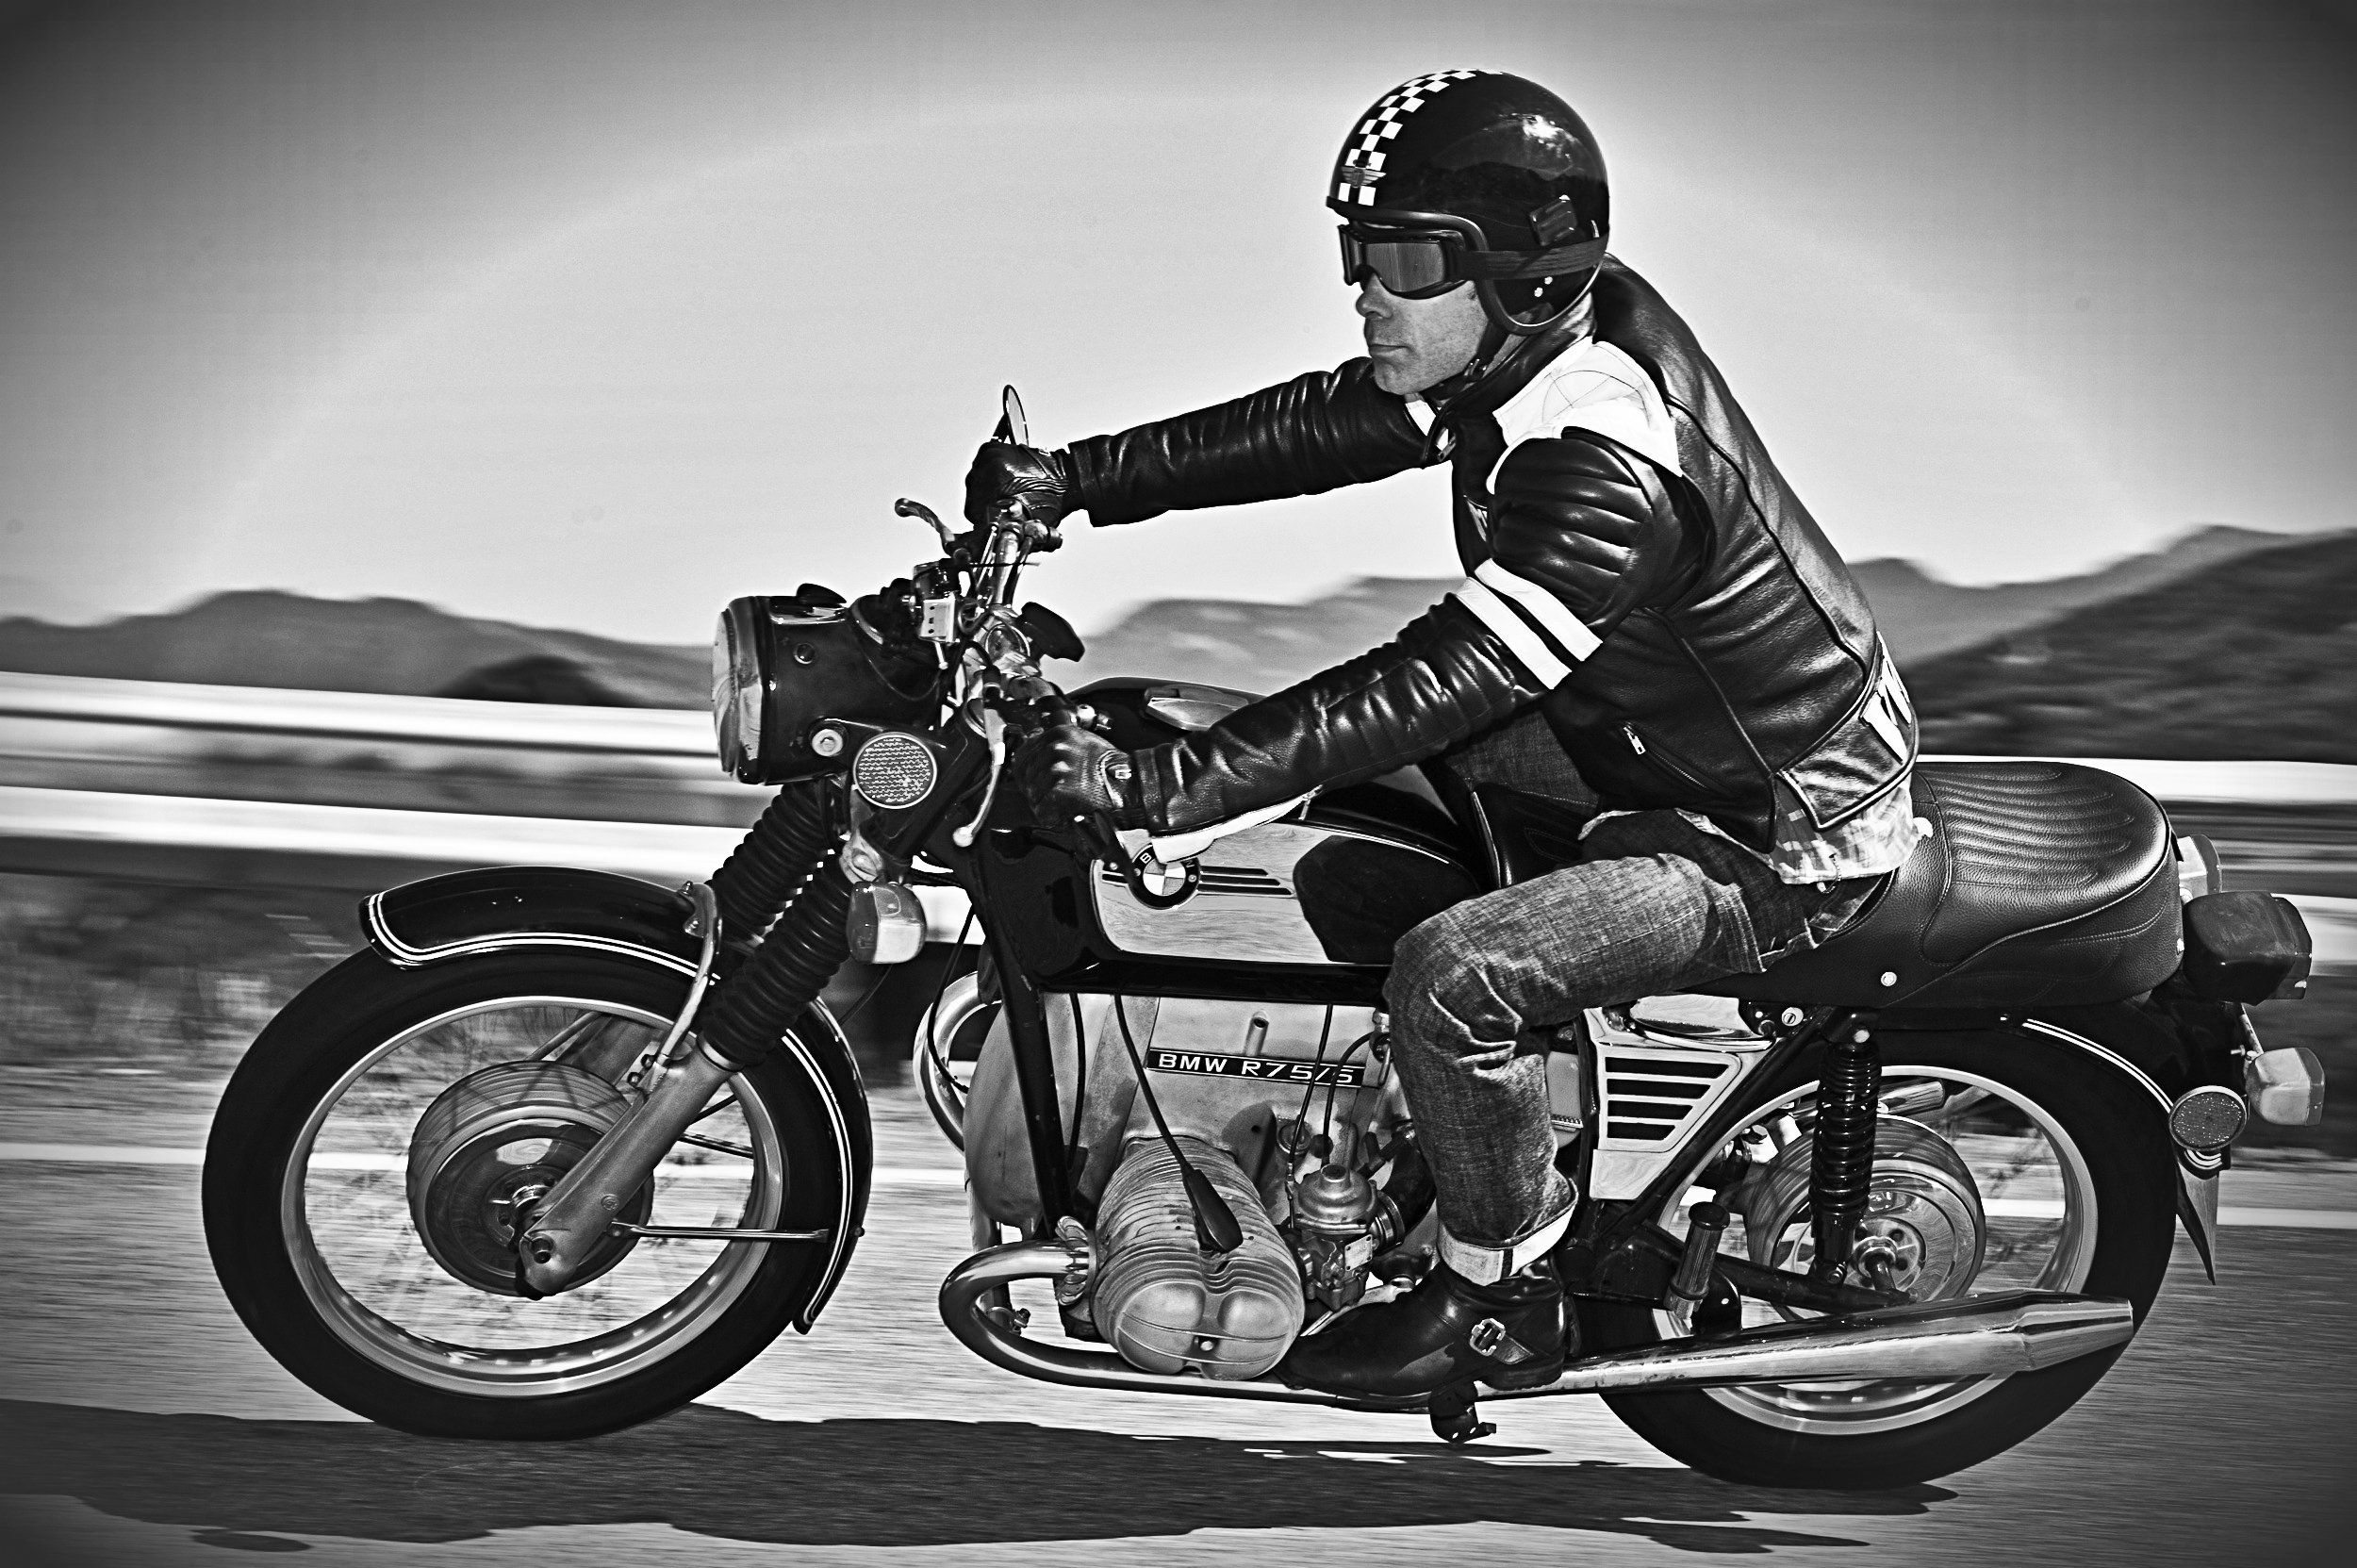 Vintage Motorcycle Wallpaper High Quality Motorcycle Wallpaper Bmw Motorcycle Vintage Bmw Cafe Racer